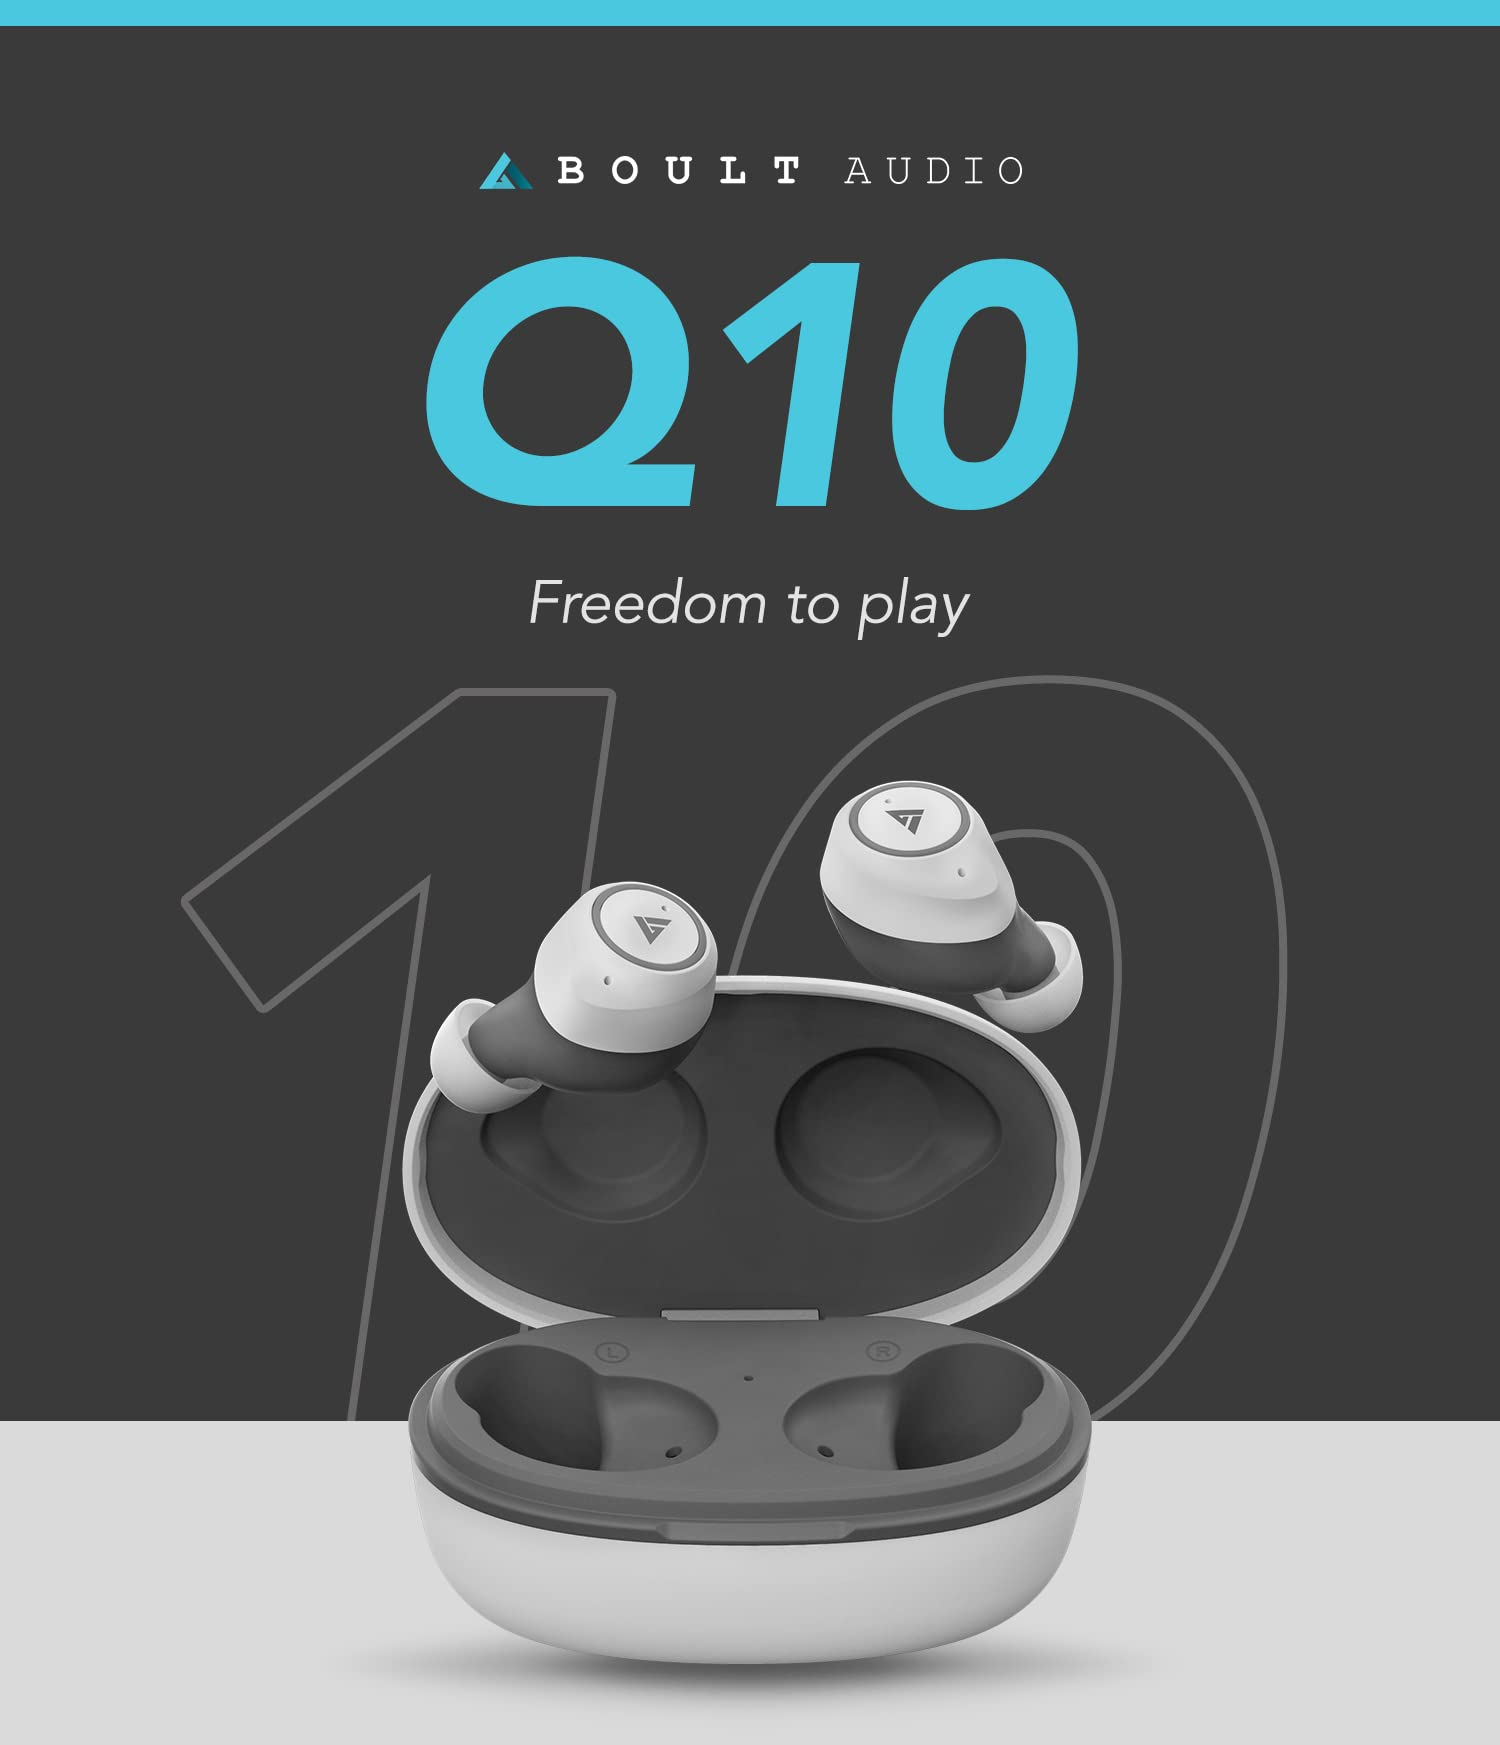 Boult Audio Q10 Launching Soon: Price, Features, Specs, Launch Date